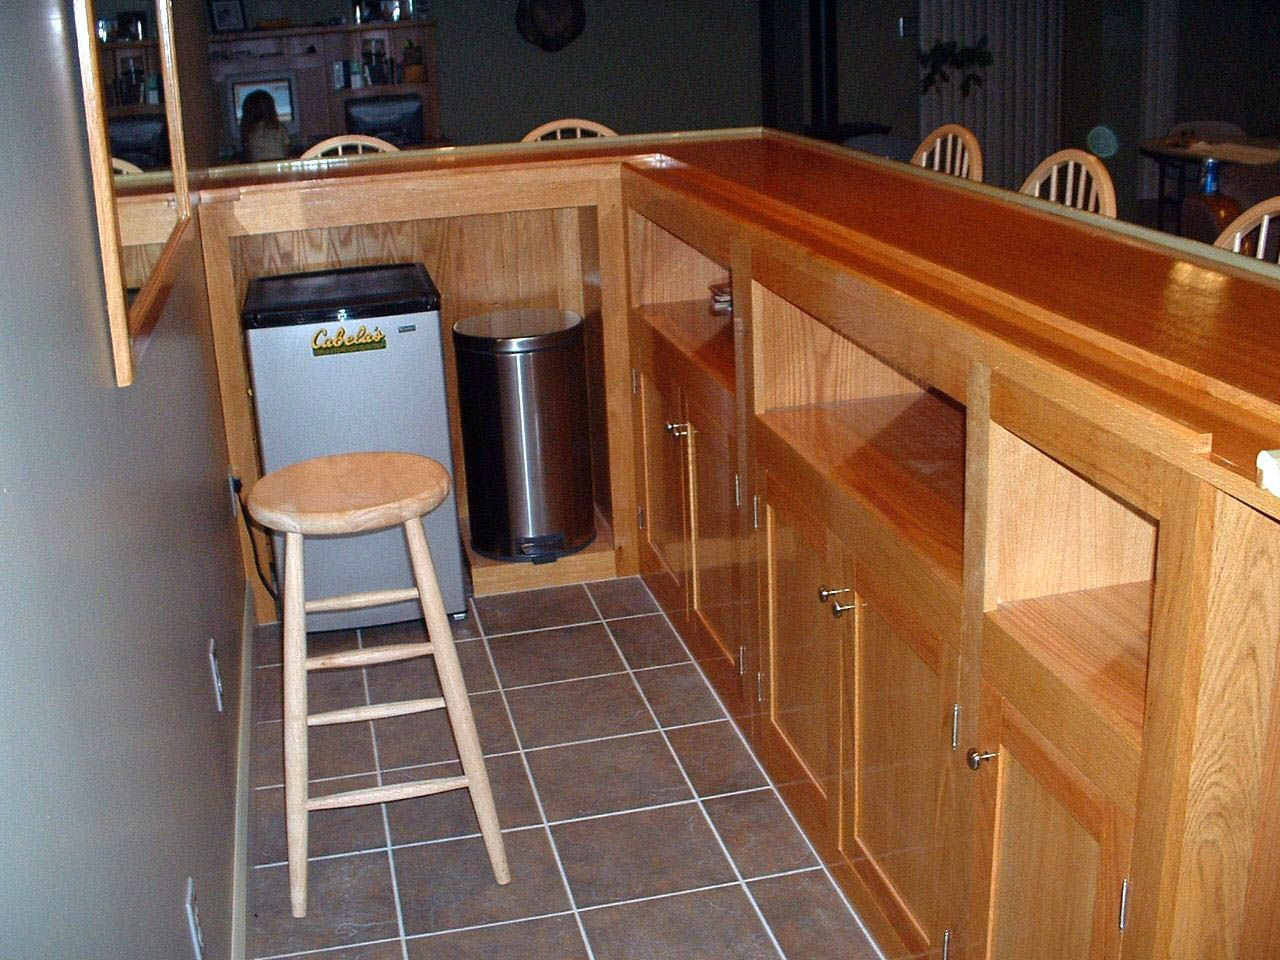 Fantastic Basement Pull Up Bar Joist One And Only Homesable Com Building A Home Bar Home Bar Plans Bar Plans